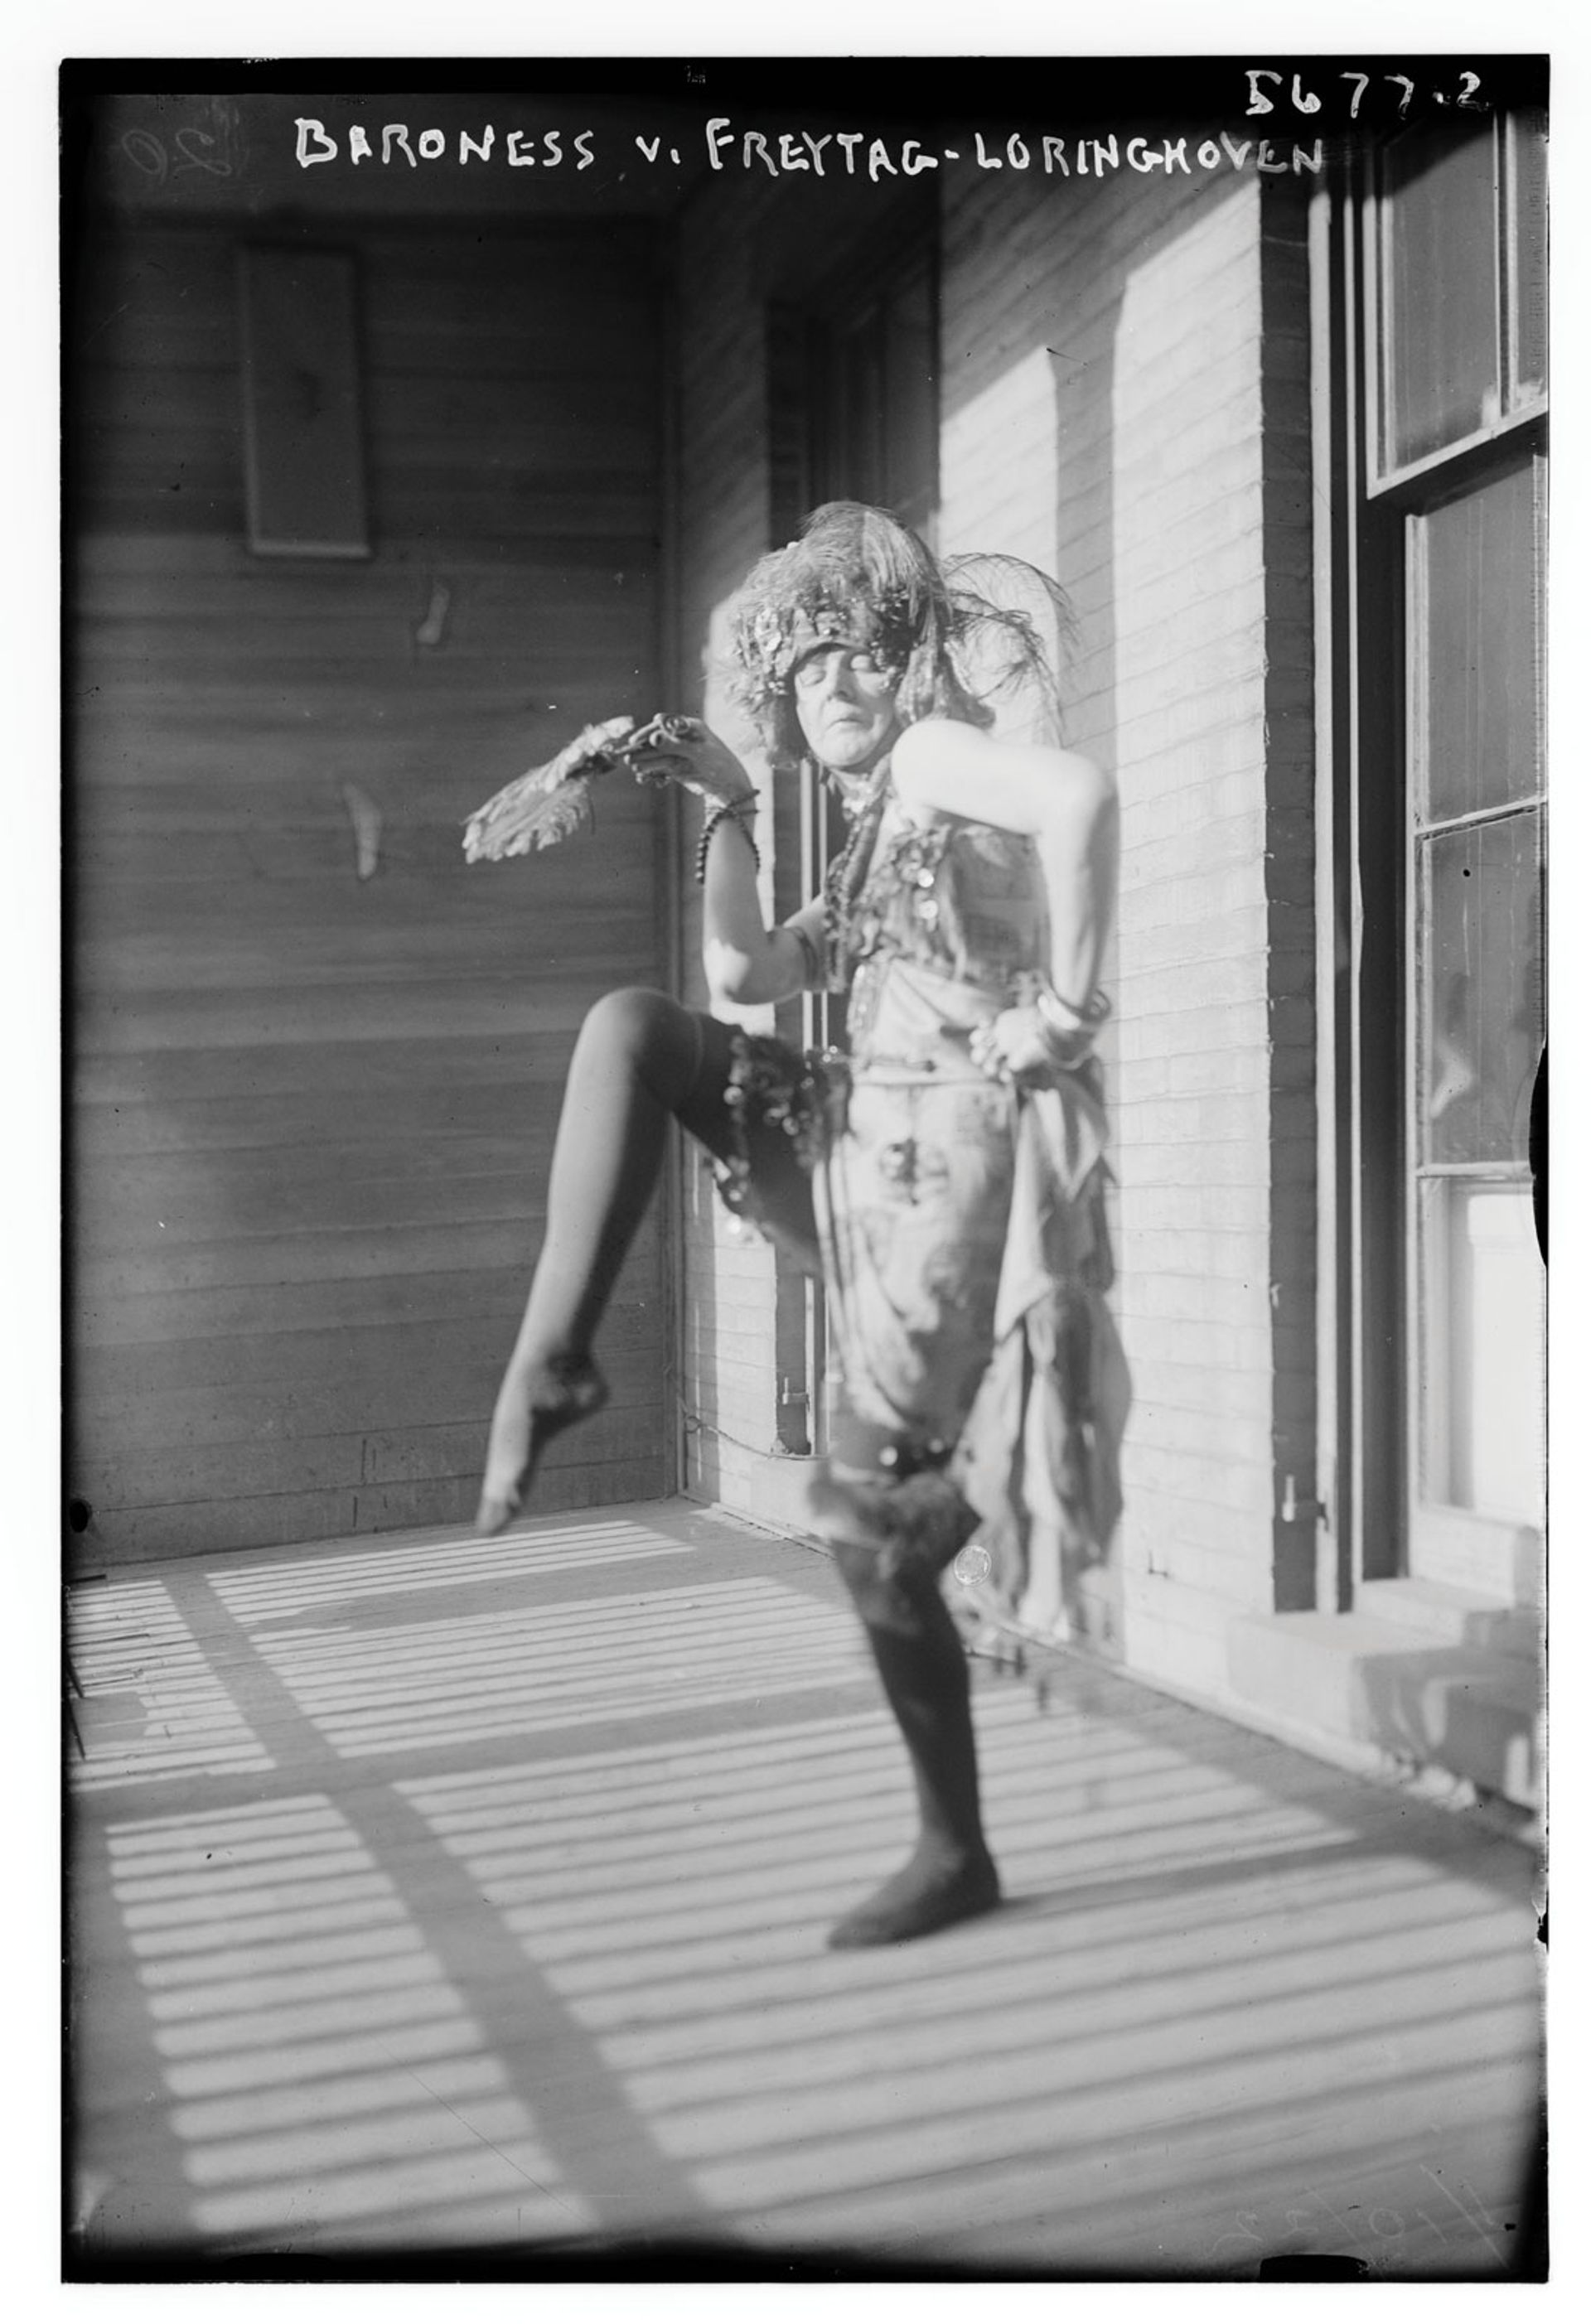 Baroness Elsa von Freytag-Loringhoven pictured around 1920-25 © Bain News Service photograph collection/American Library of Congress